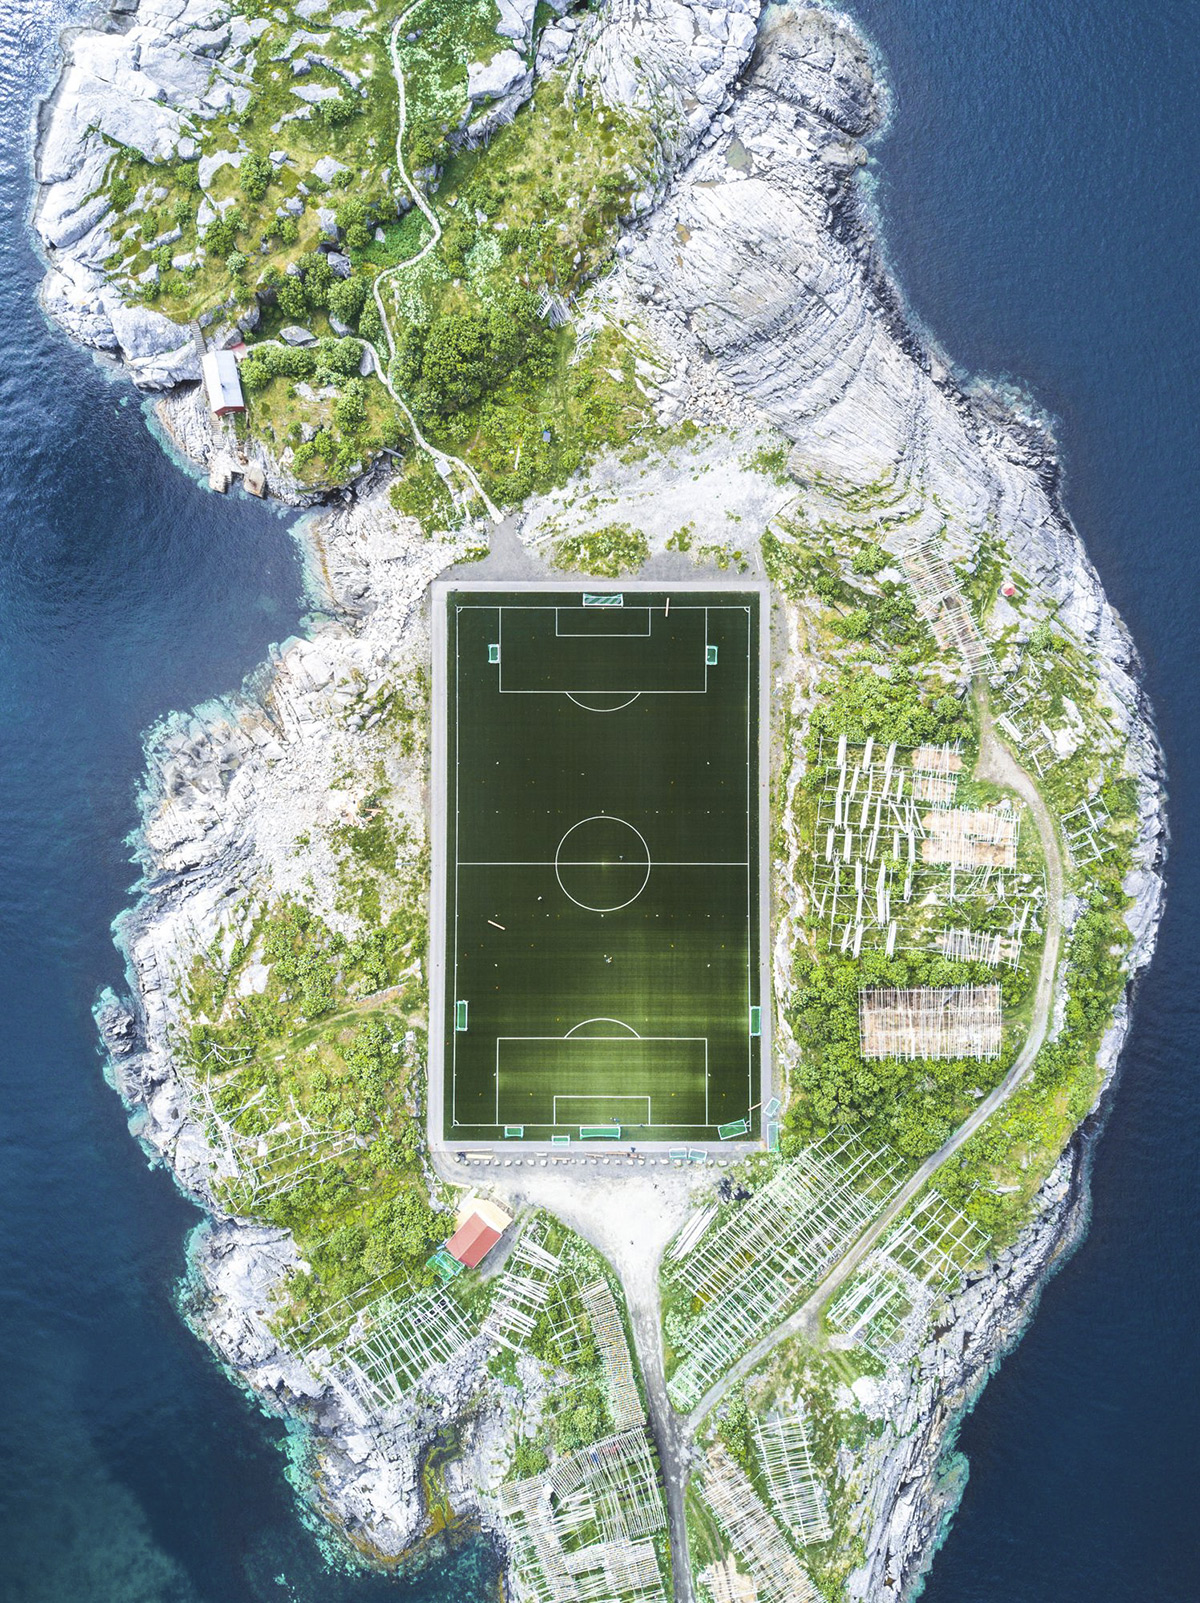 Cities, 3rd place. Photo and caption by Misha De-Stroyev . Henningsv?r Football Field . This footbal